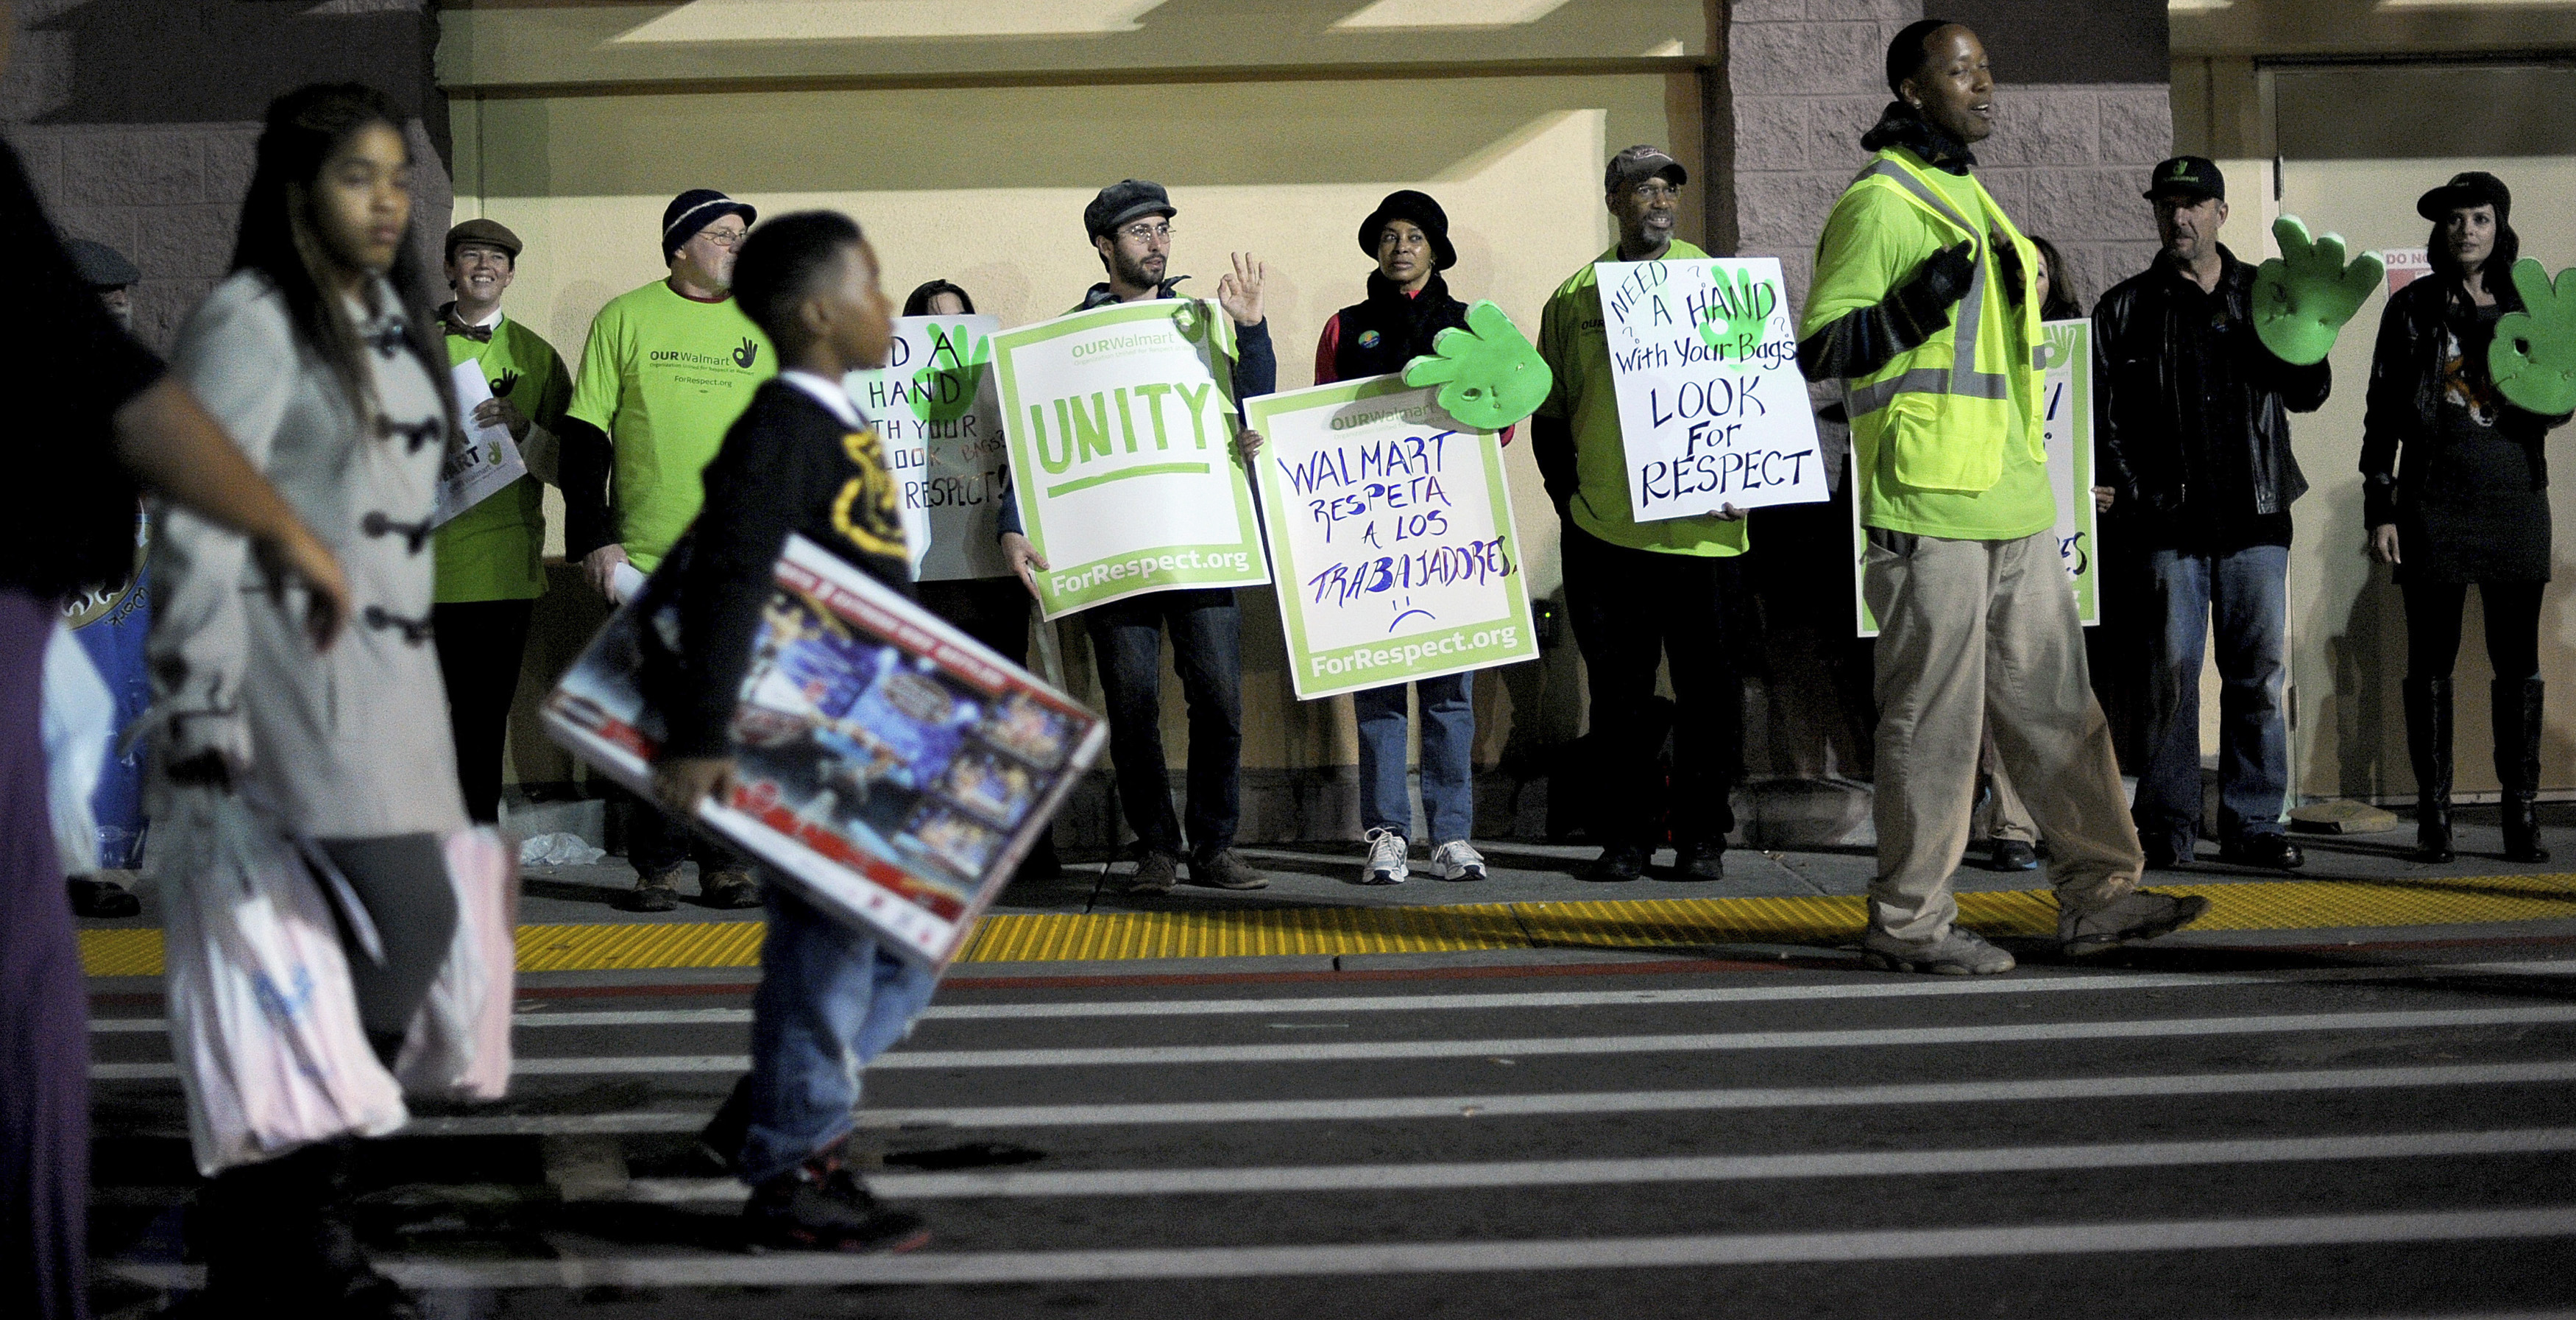 Protesters-picket-outside-a-Walmart-store-as-holiday-sales-commence-in-San-Leandro-California-November-22-2012.-ReutersNoah-Berger